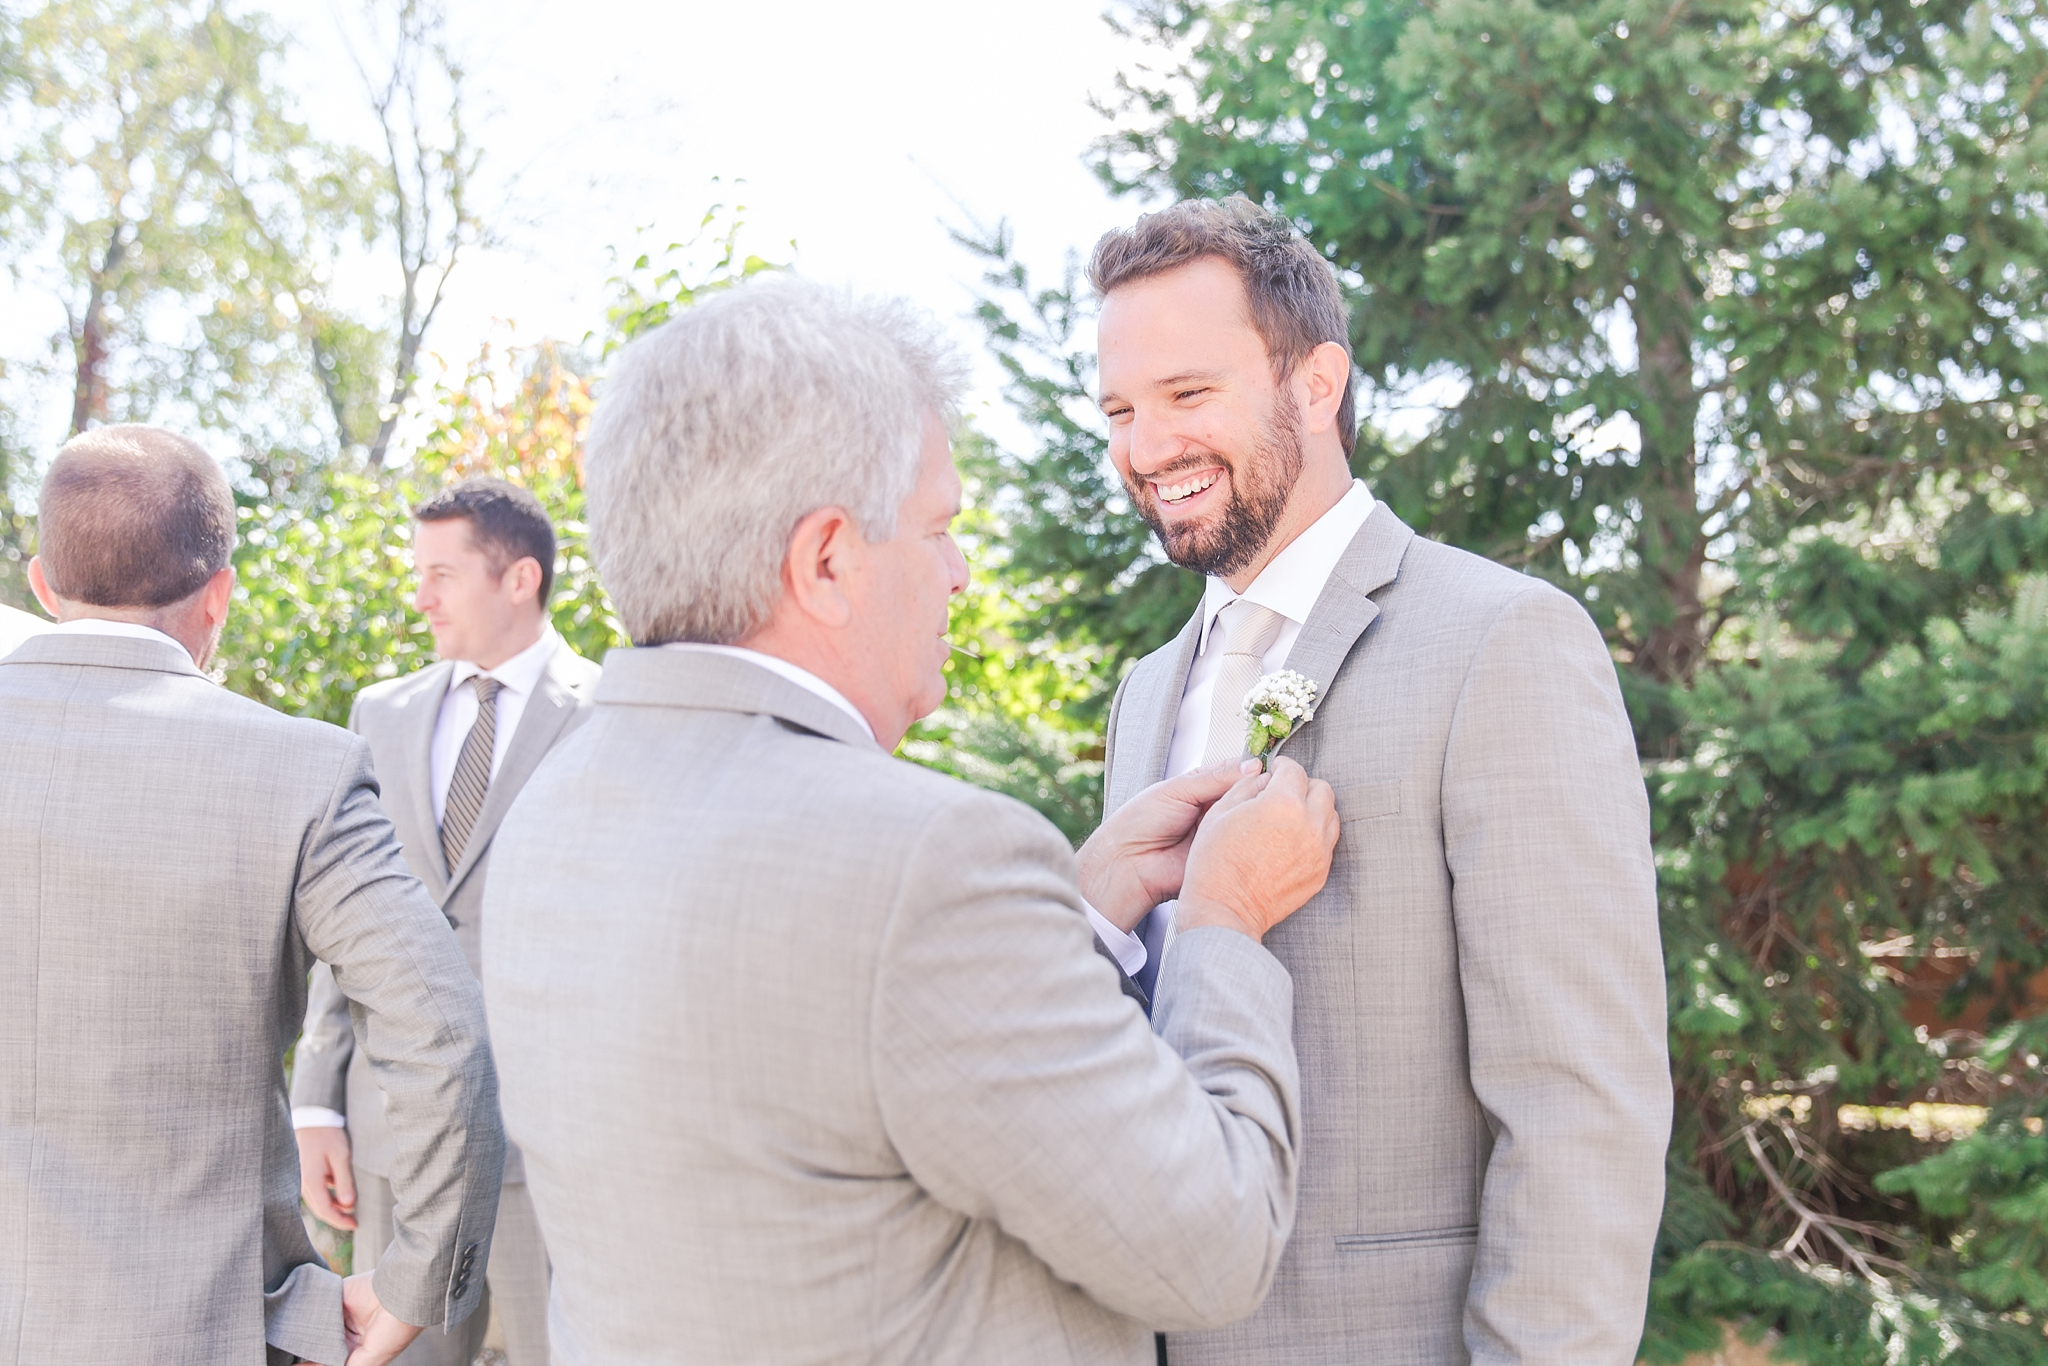 natural-rustic-wedding-photos-at-frutig-farms-the-valley-in-ann-arbor-michigan-by-courtney-carolyn-photography_0004.jpg